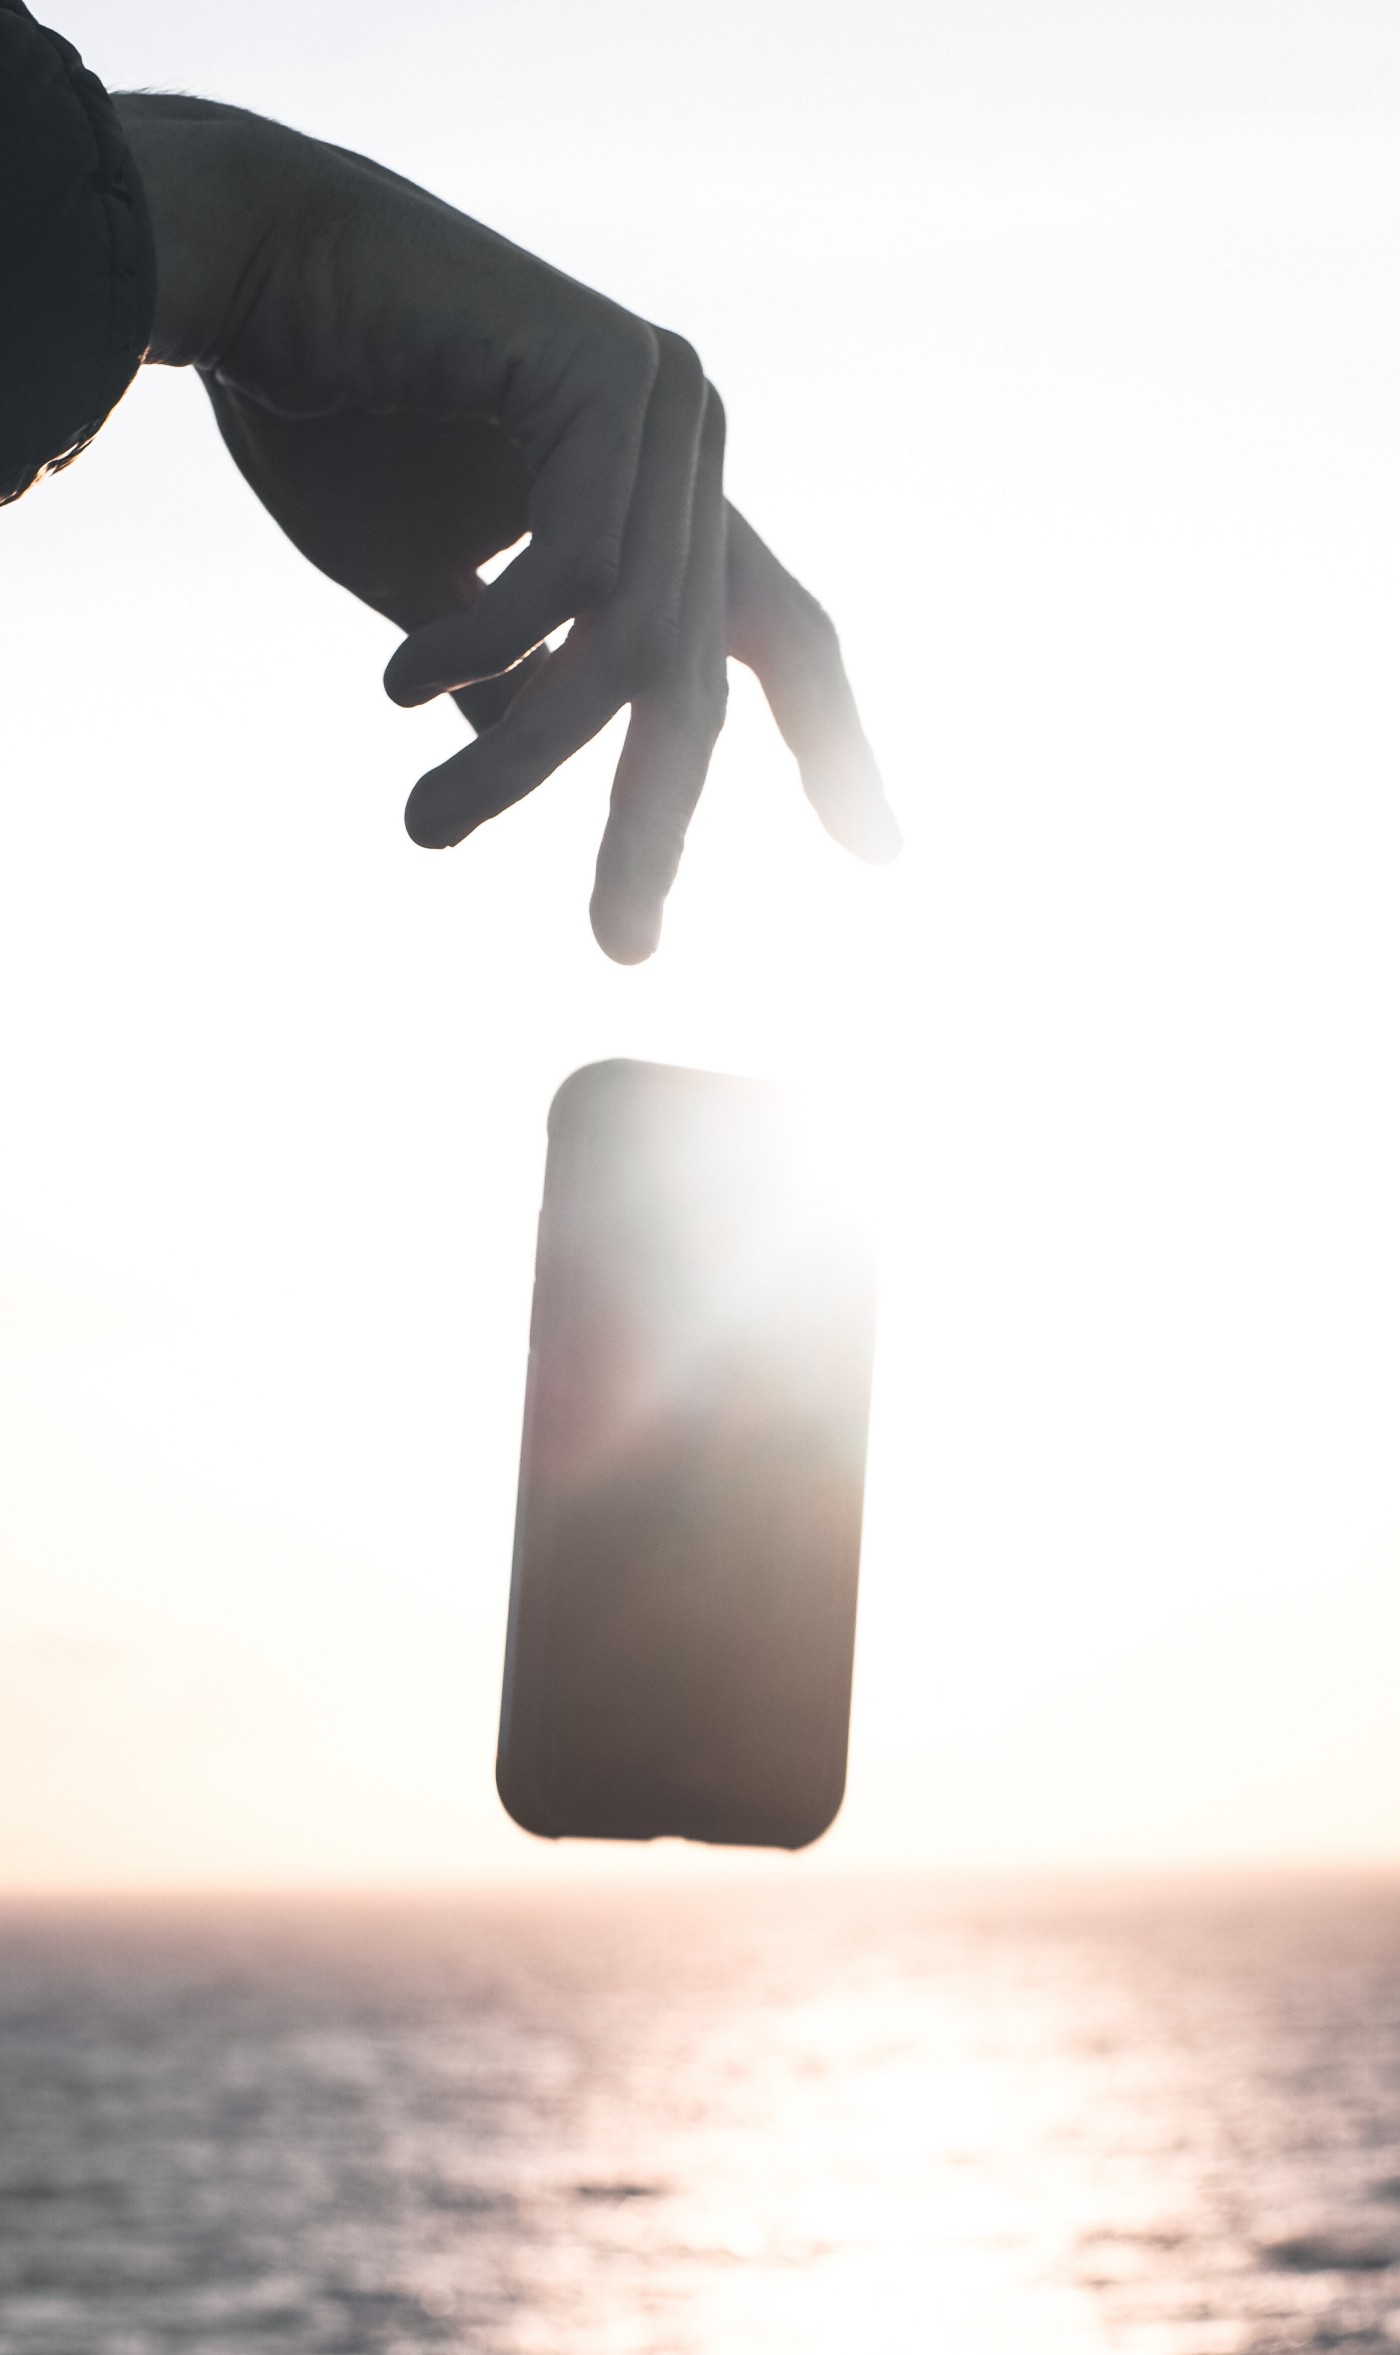 someone dropped a cellphone into water under sunshine